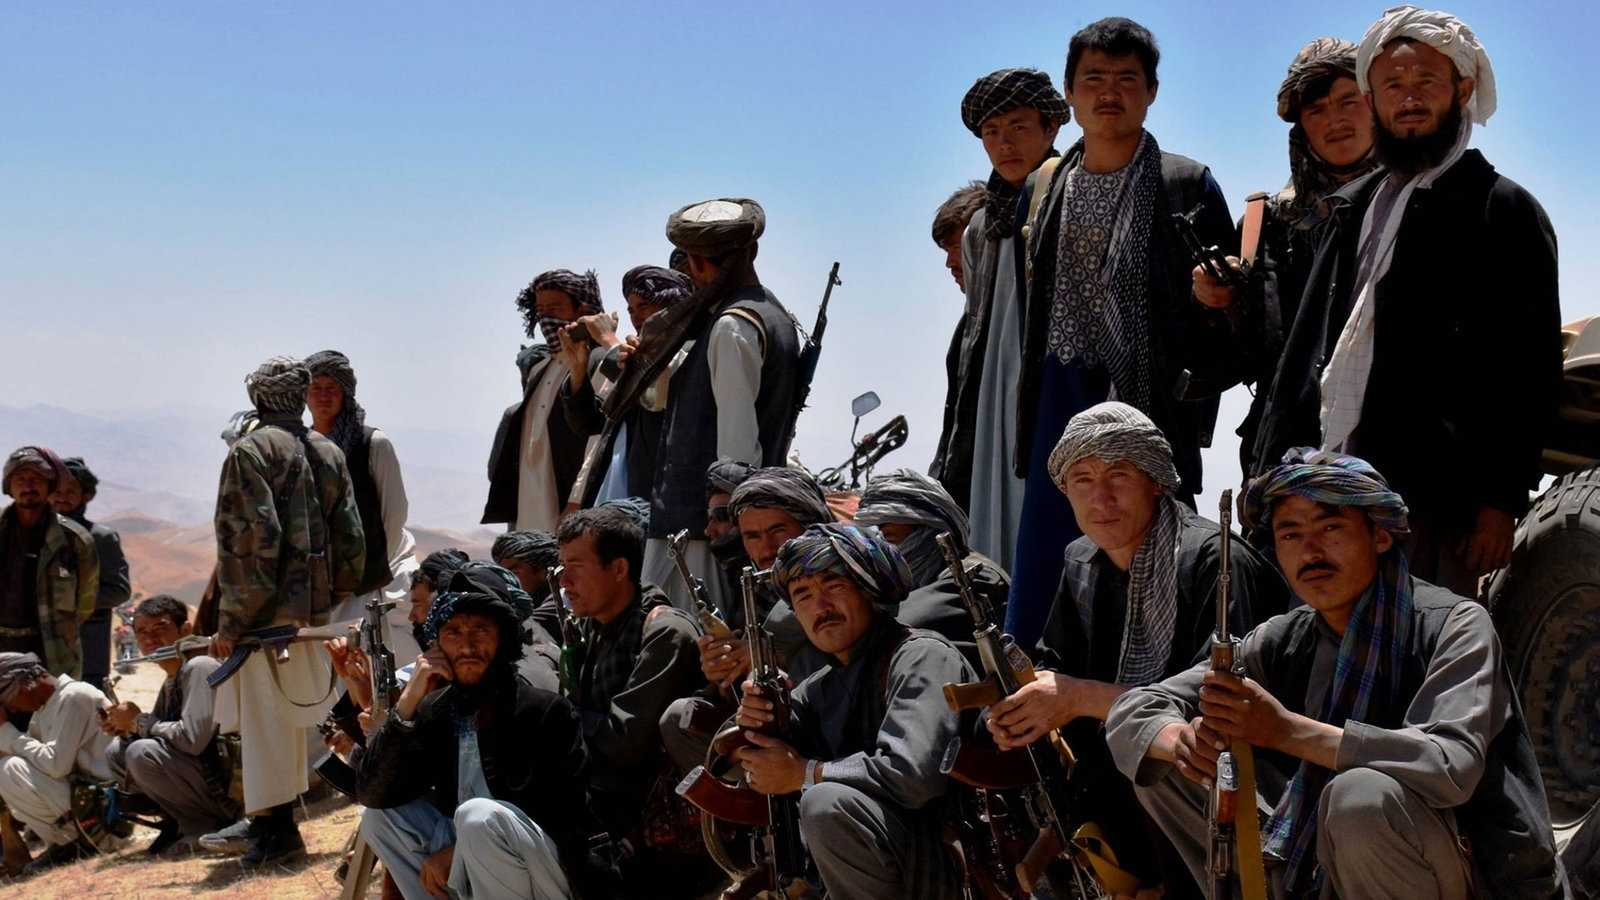 taliban in afghanistan Afghanistan said on tuesday the taliban would have to be defeated after trump rejected the idea of talks with the militants the taliban has recently pulled off a few horrific bombings, including .